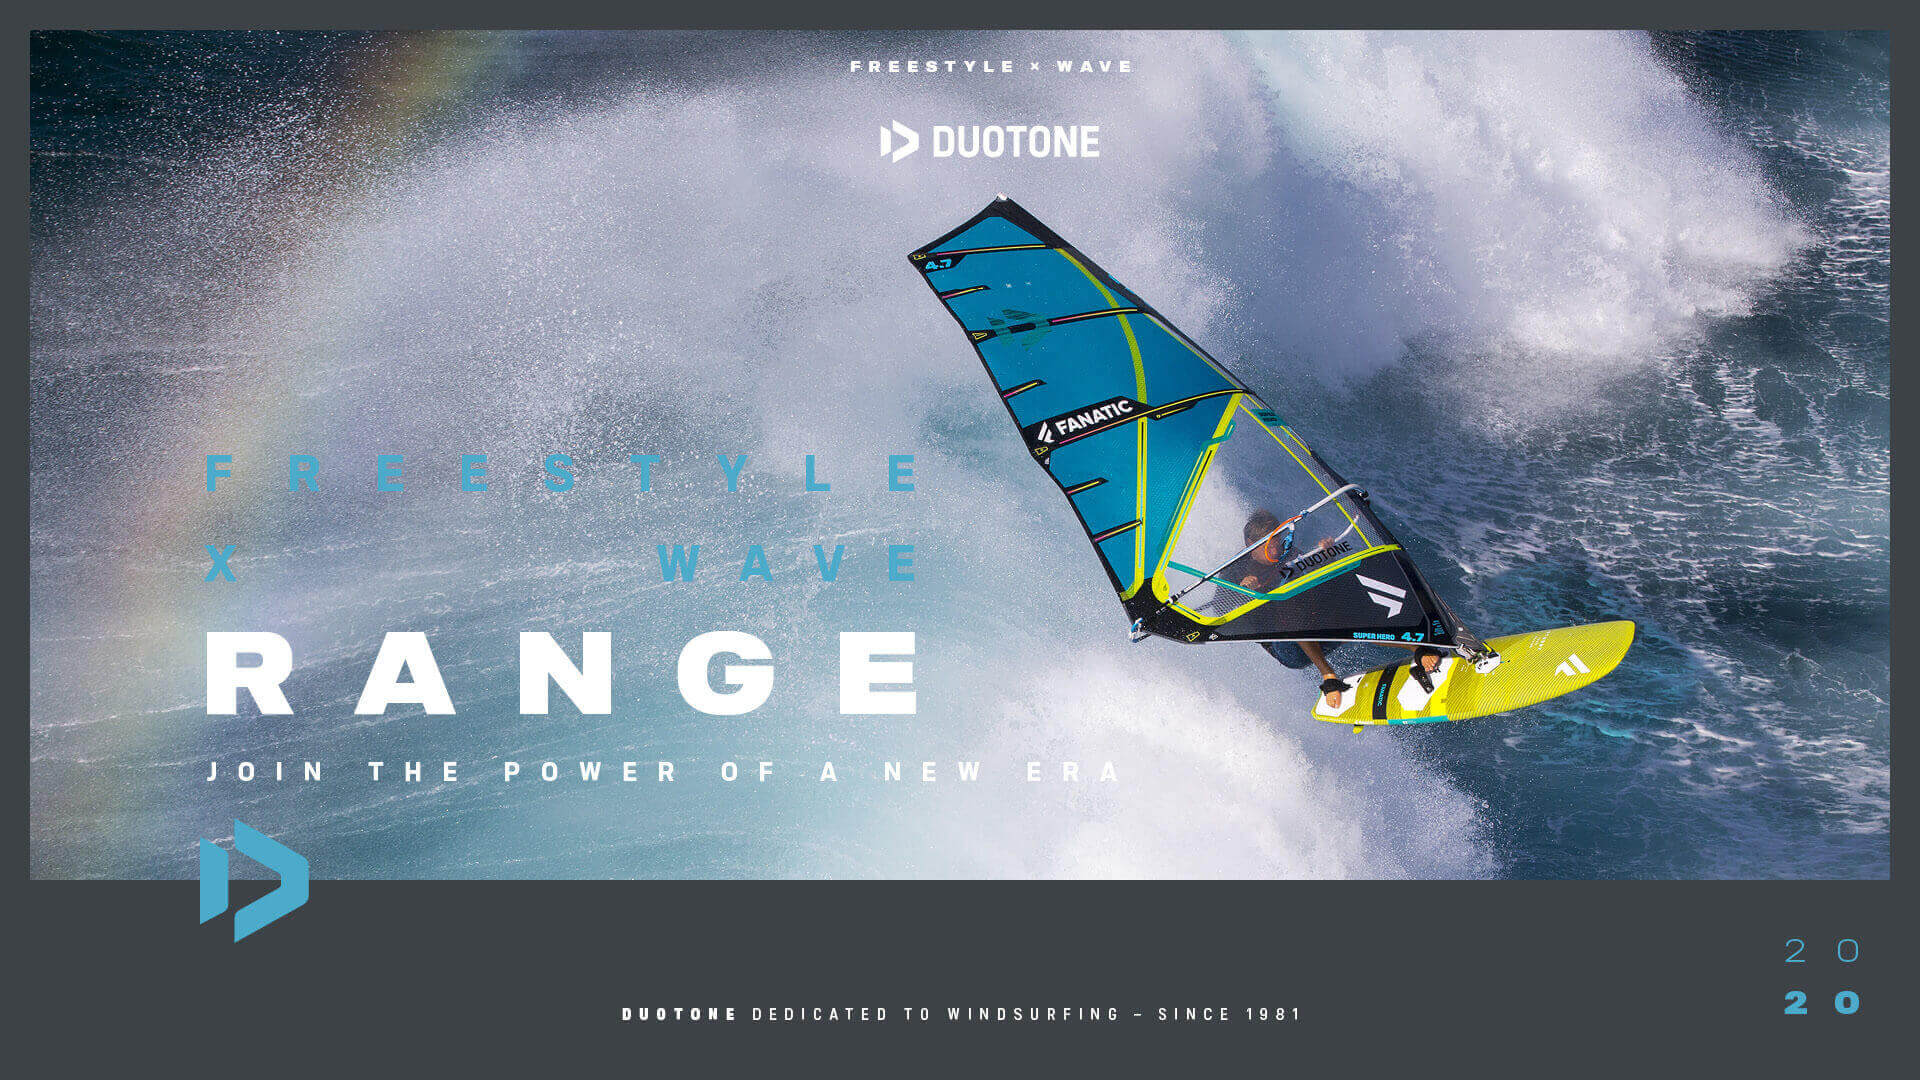 Duotone Windsurfing Freestyle Wave Range 2020 Video Kopie